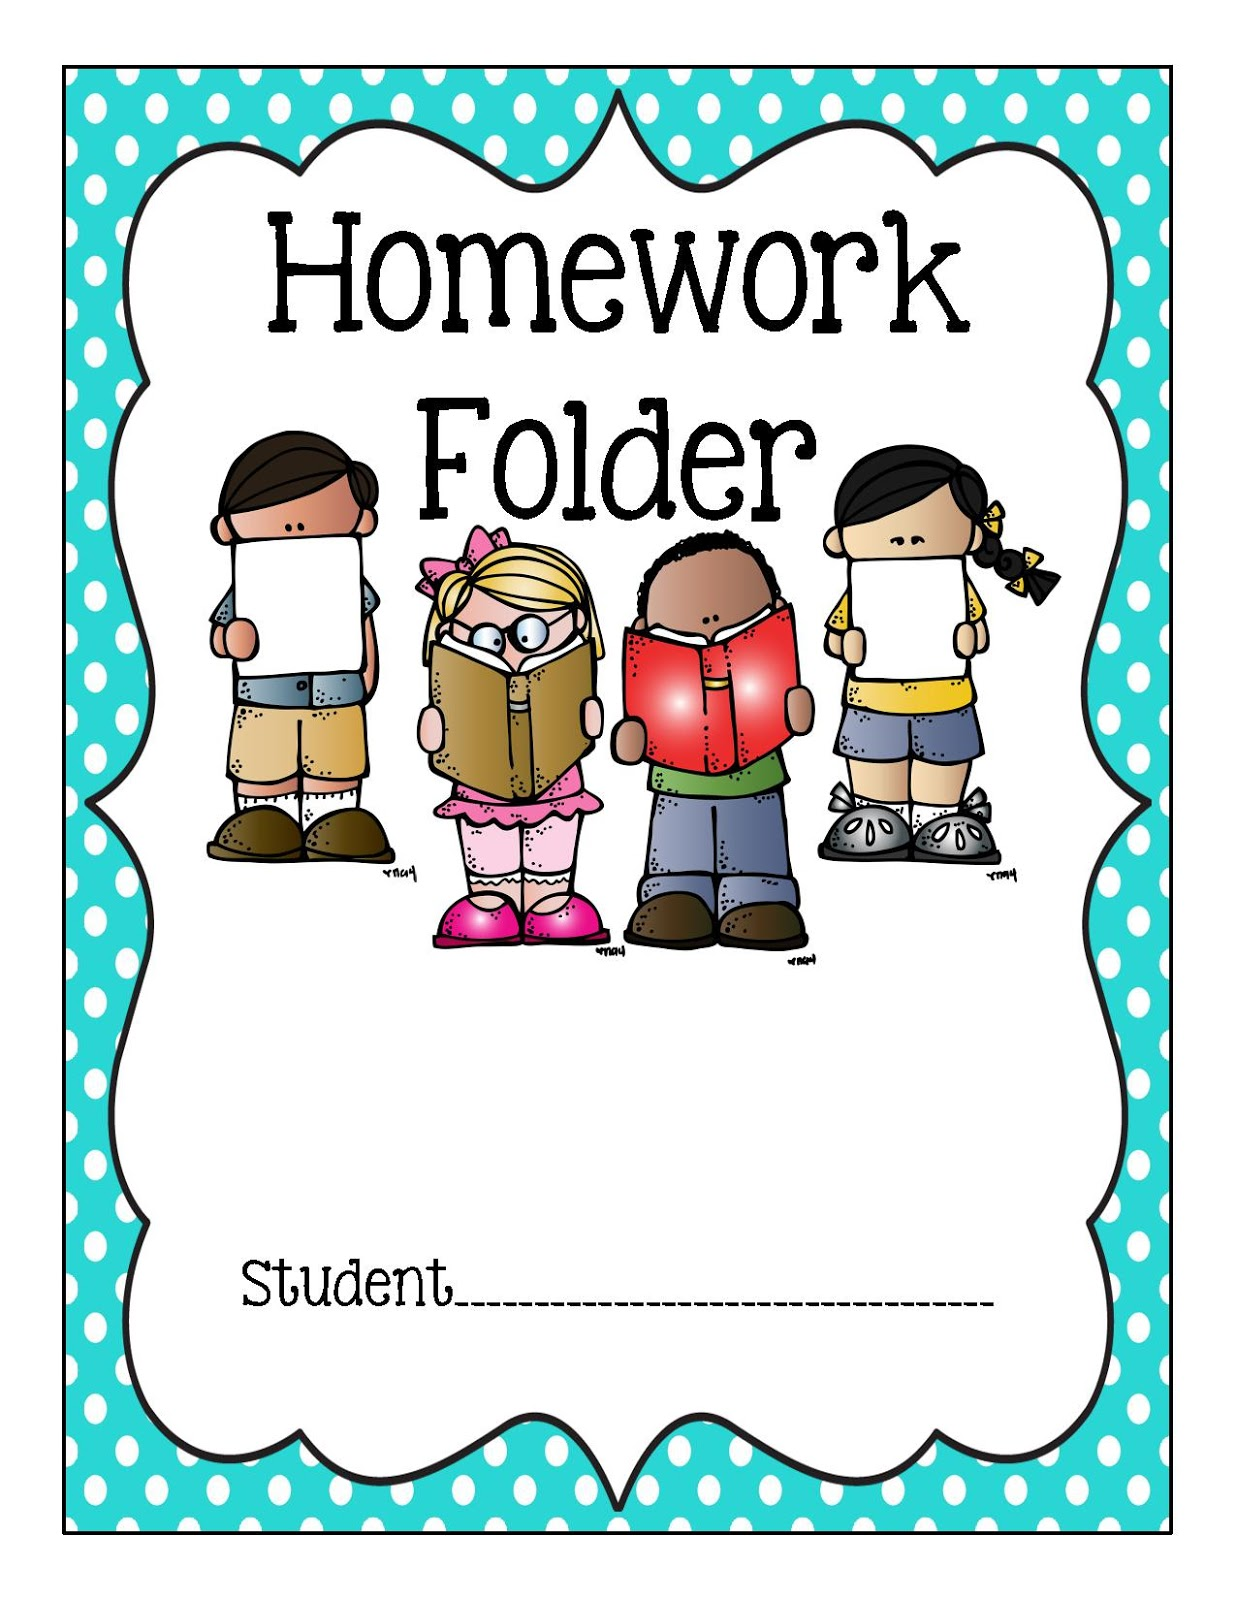 cover page of homework